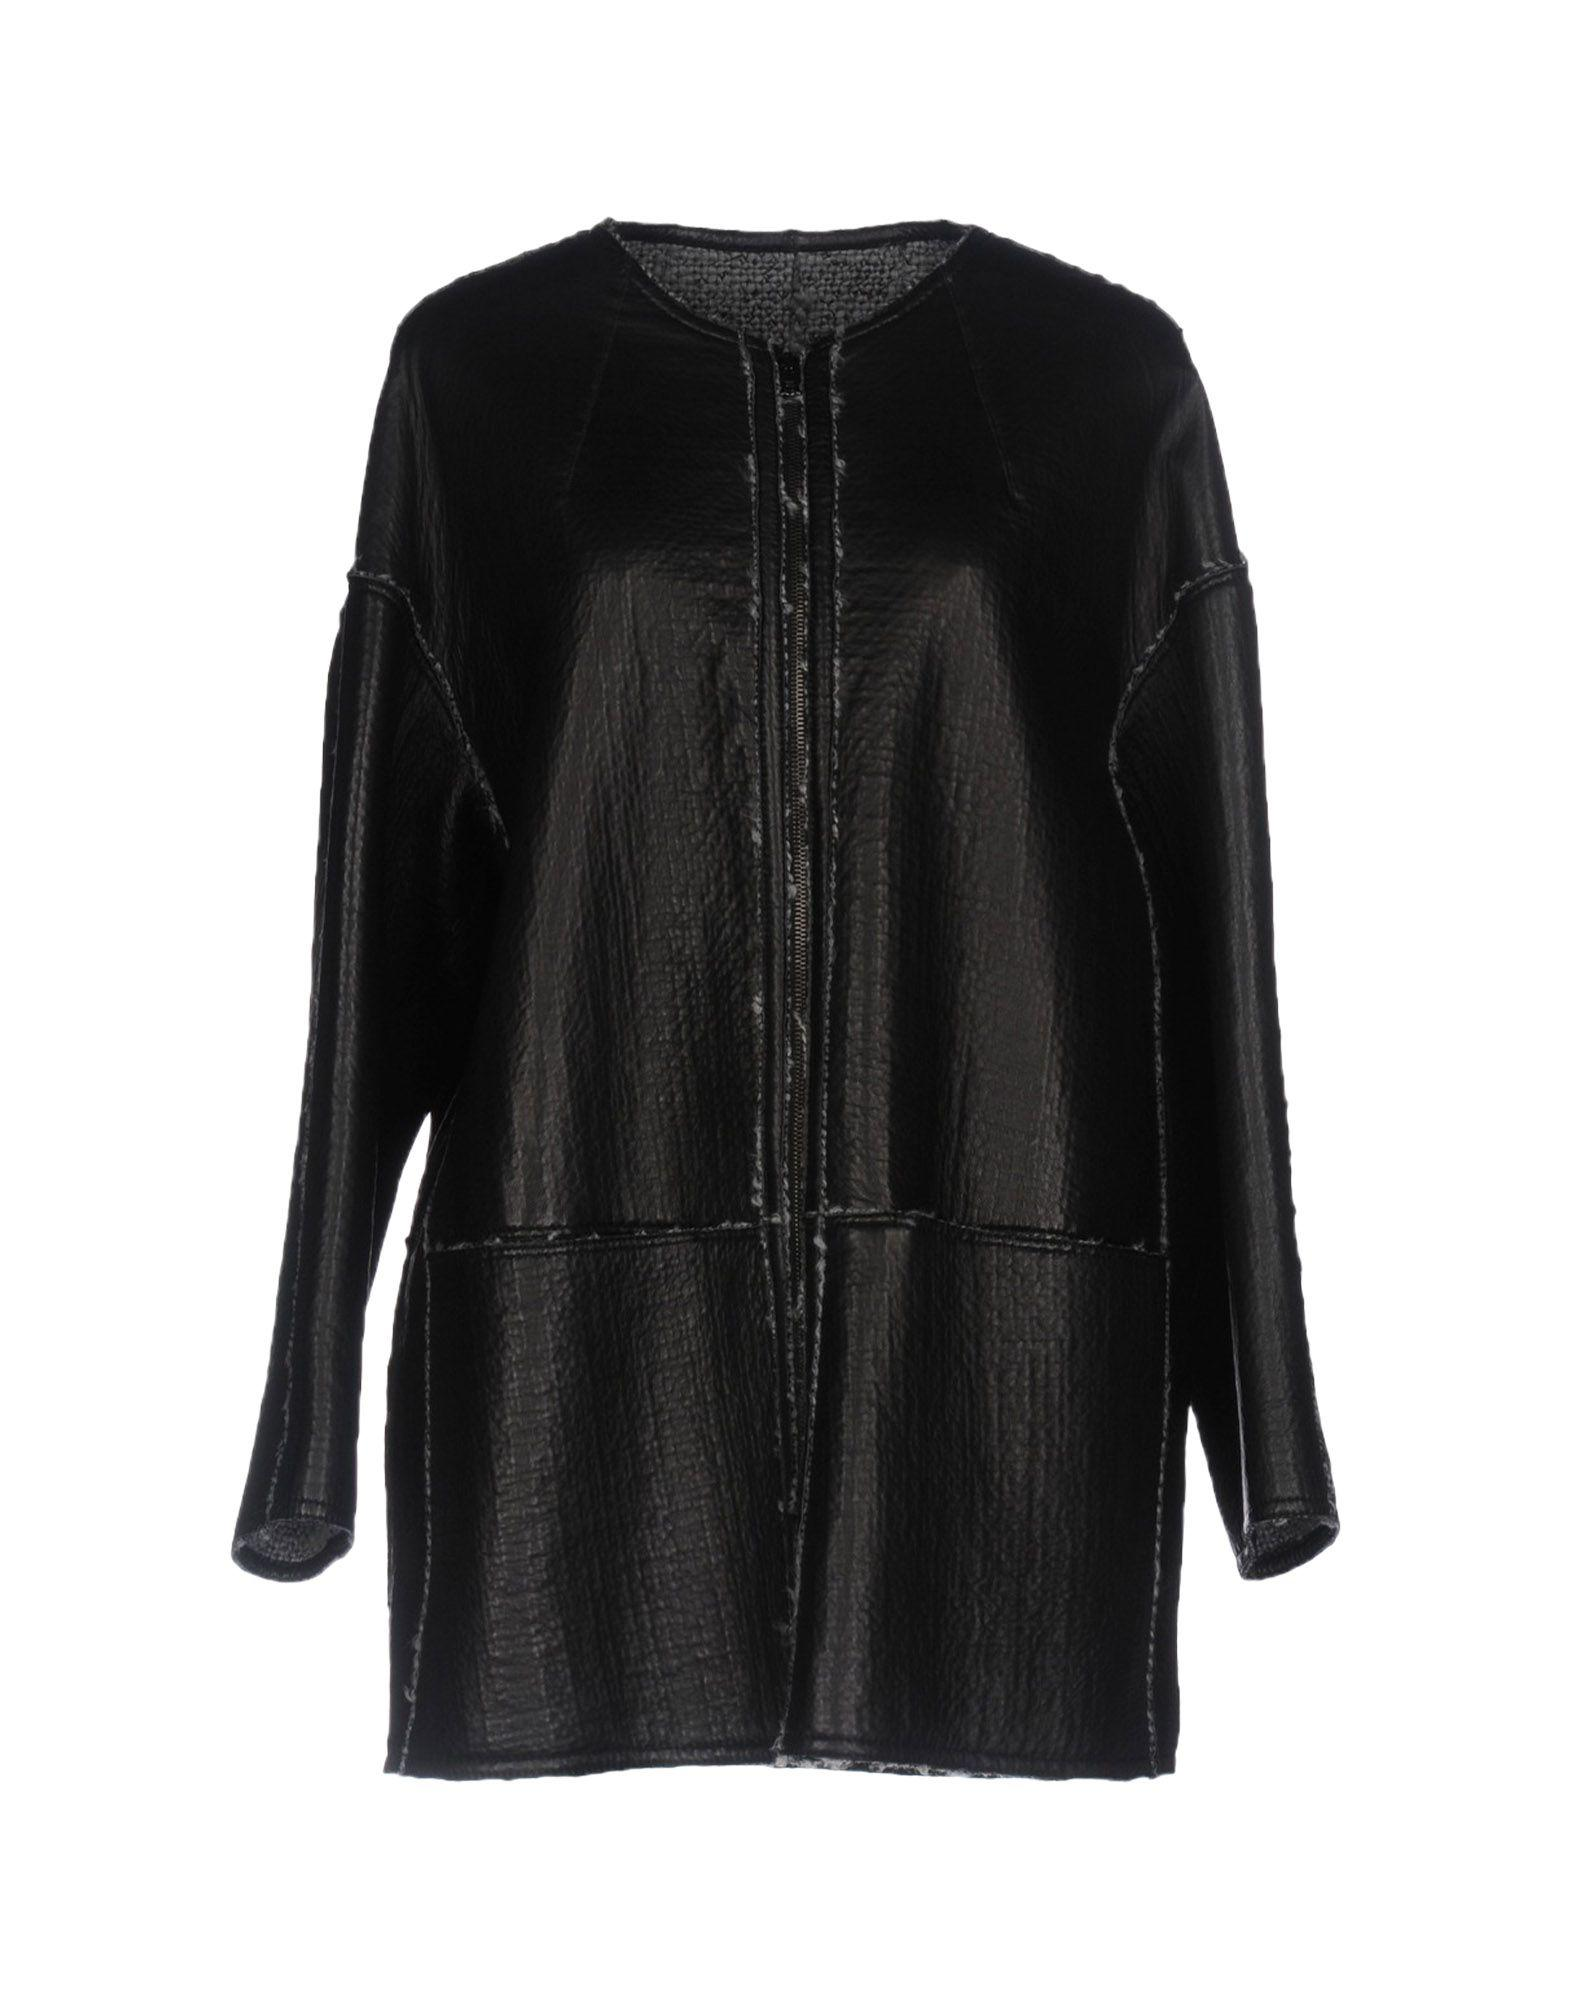 Sylvie Schimmel Coat In Black